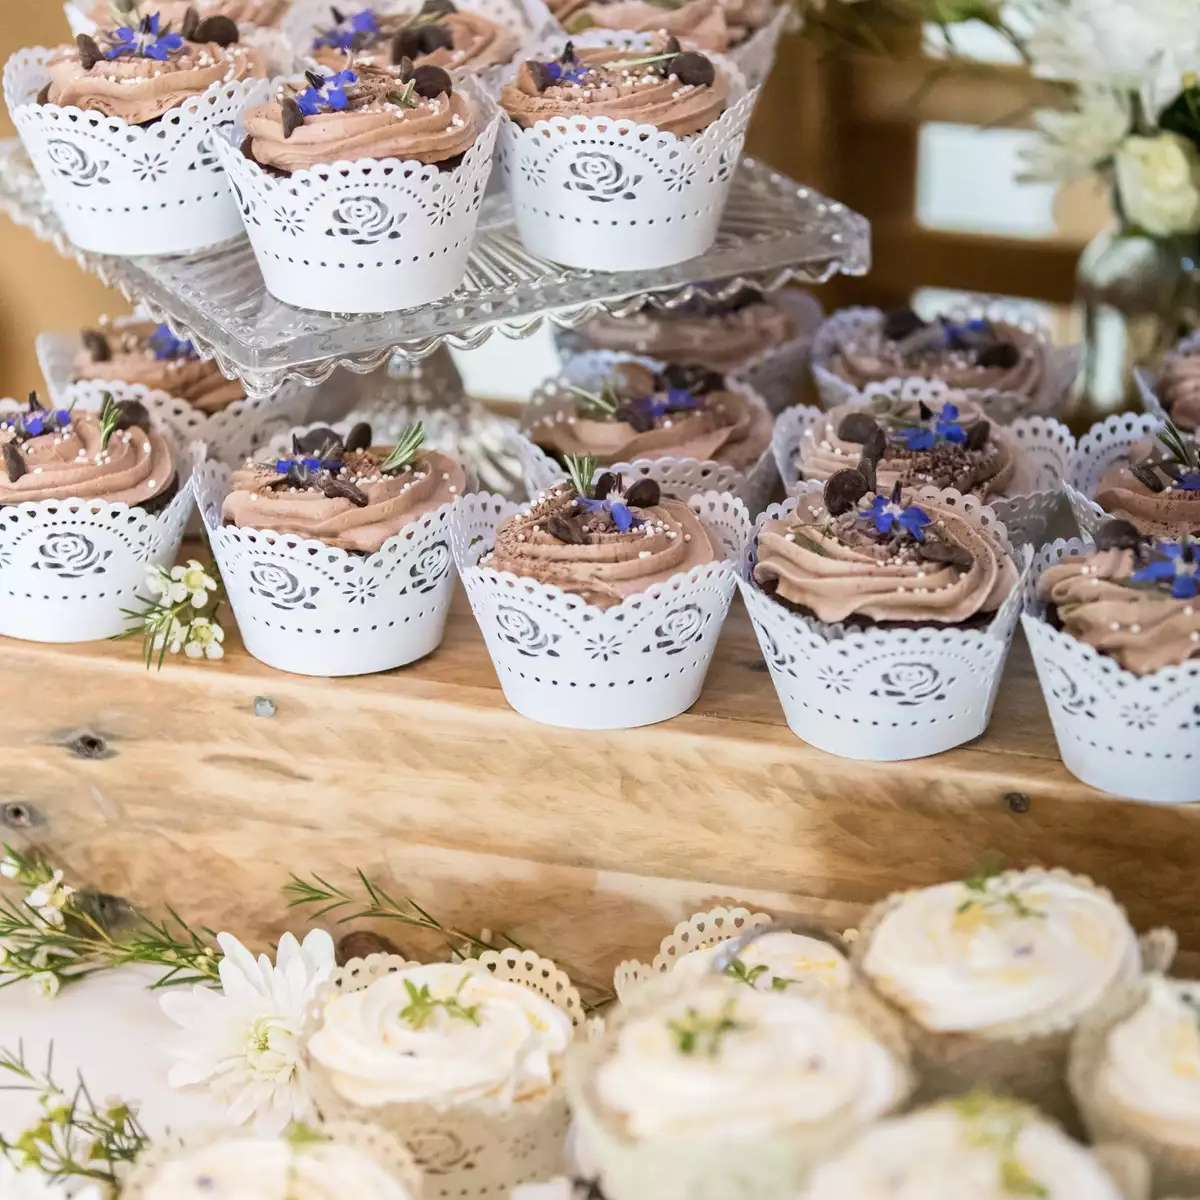 cupcakes with lace wrappers